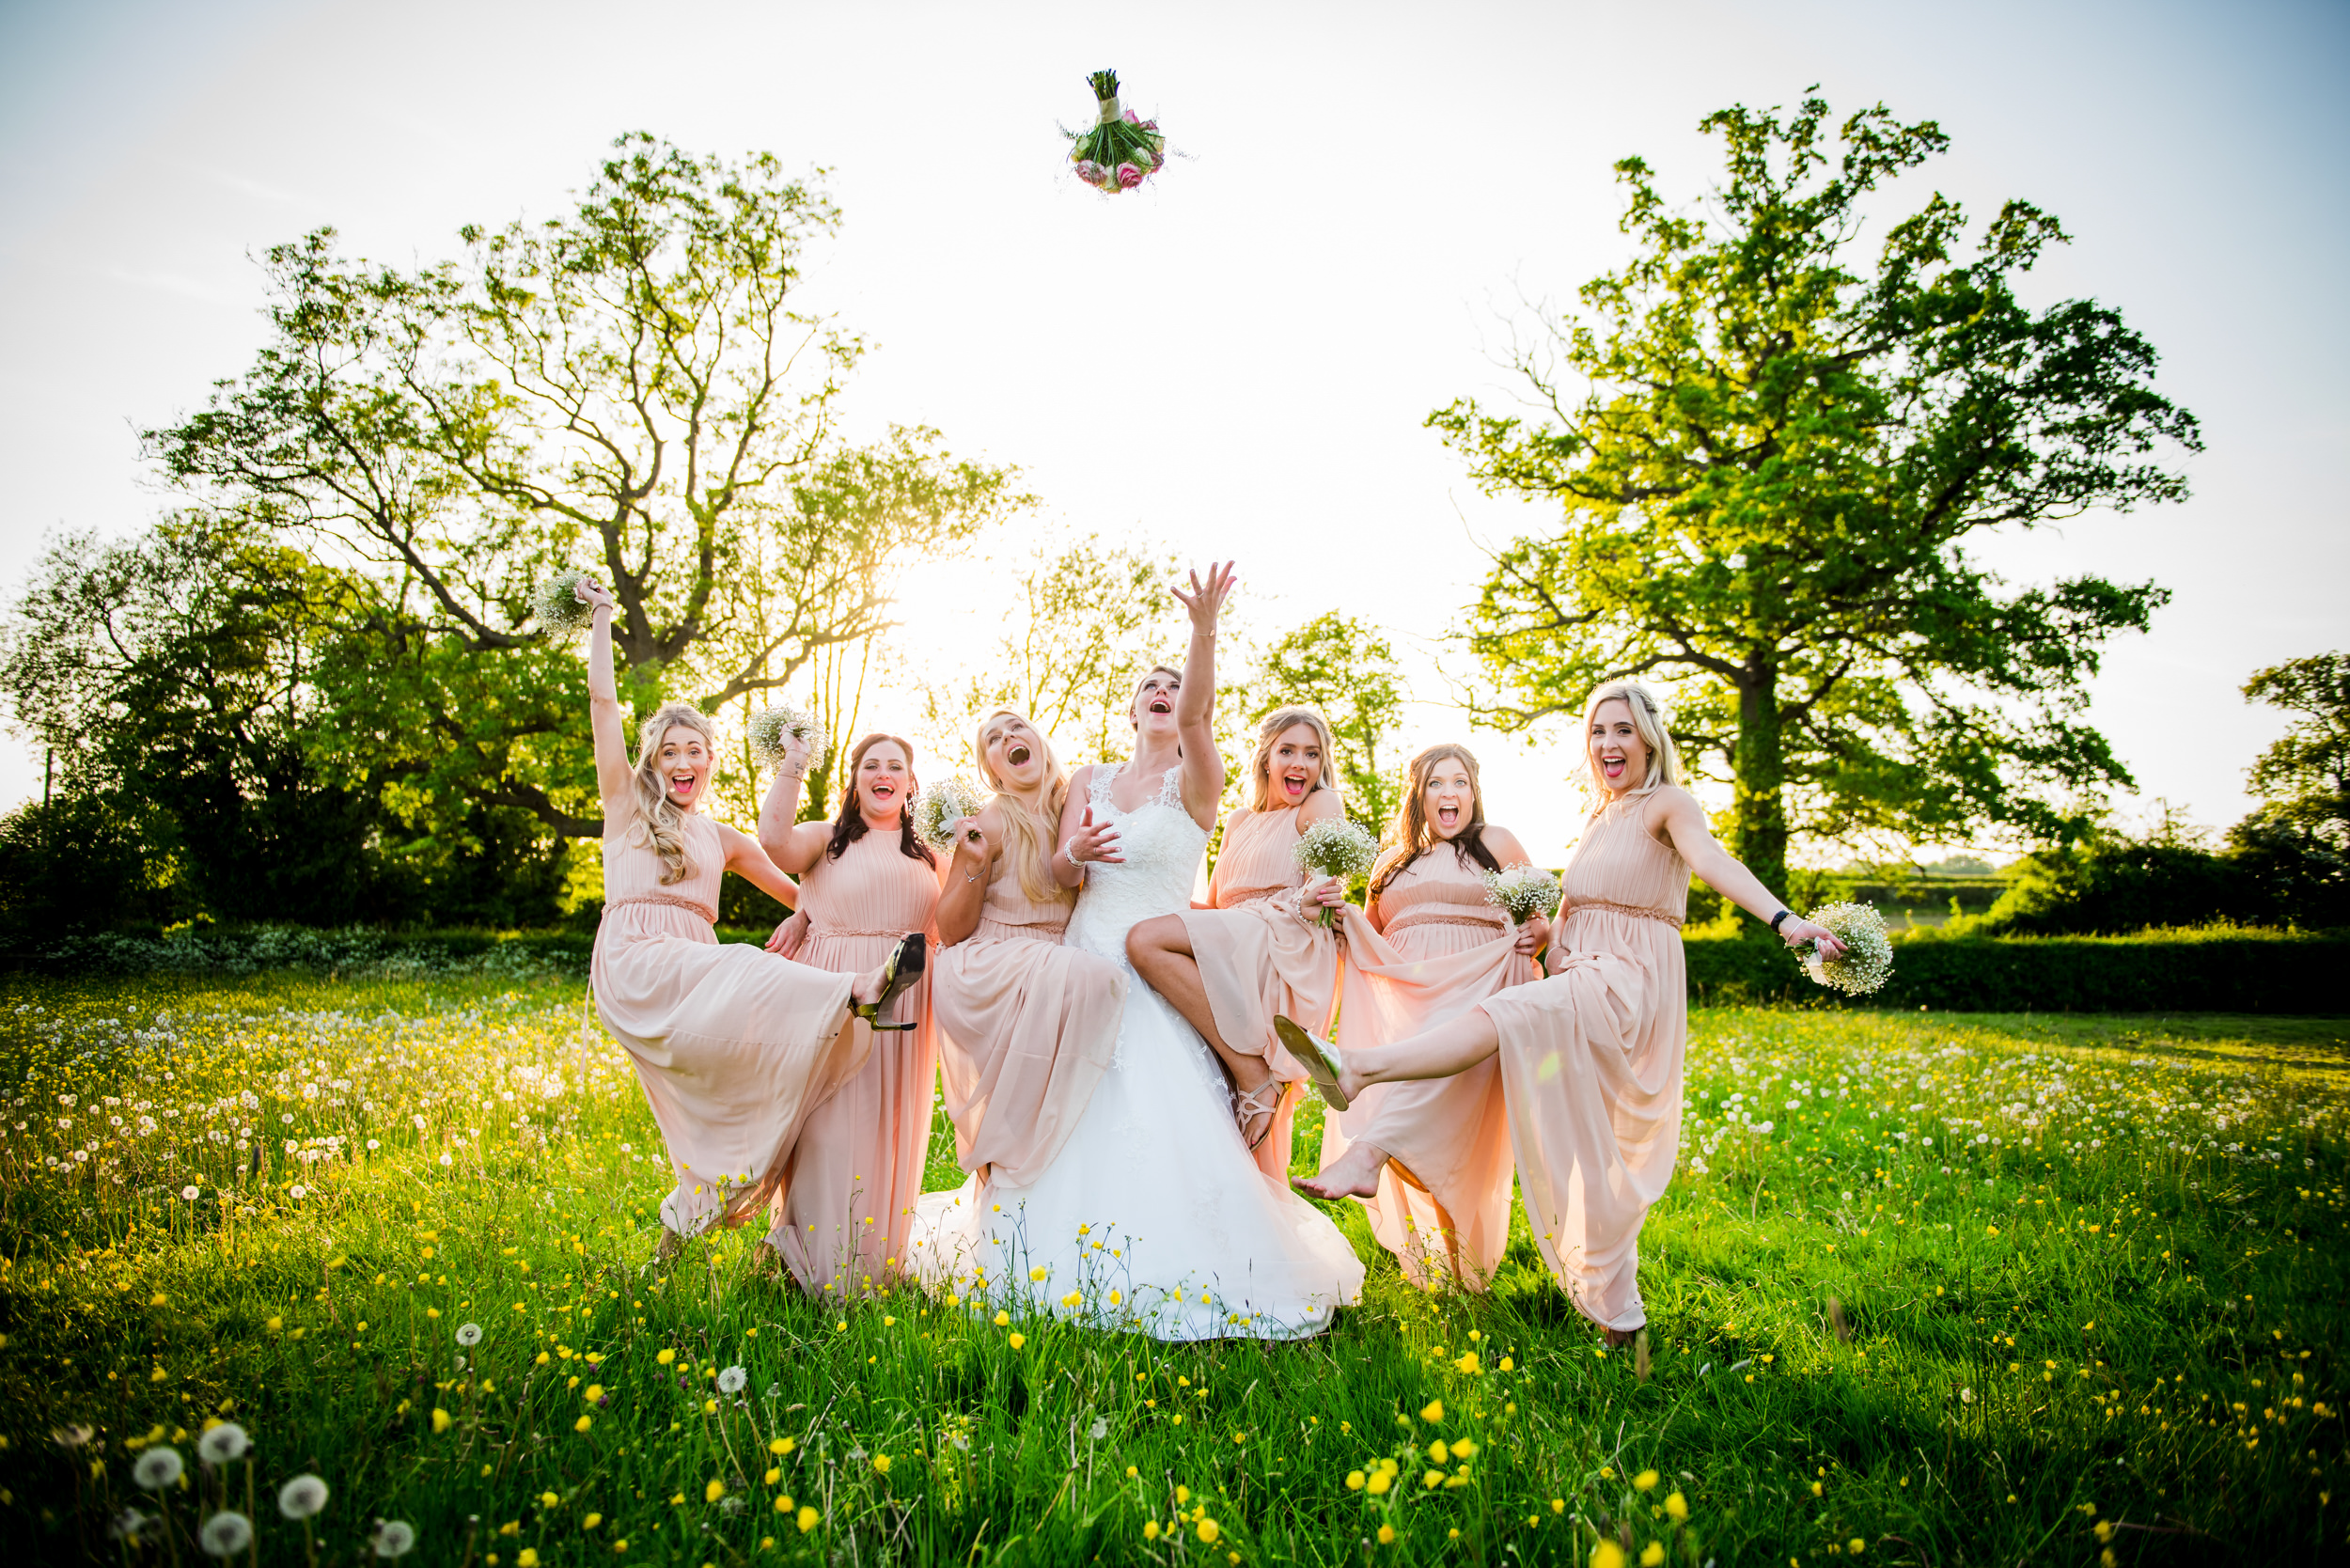 Bridesmaids group shot at Manor Hill House Worcs throwing the Wedding bouquet